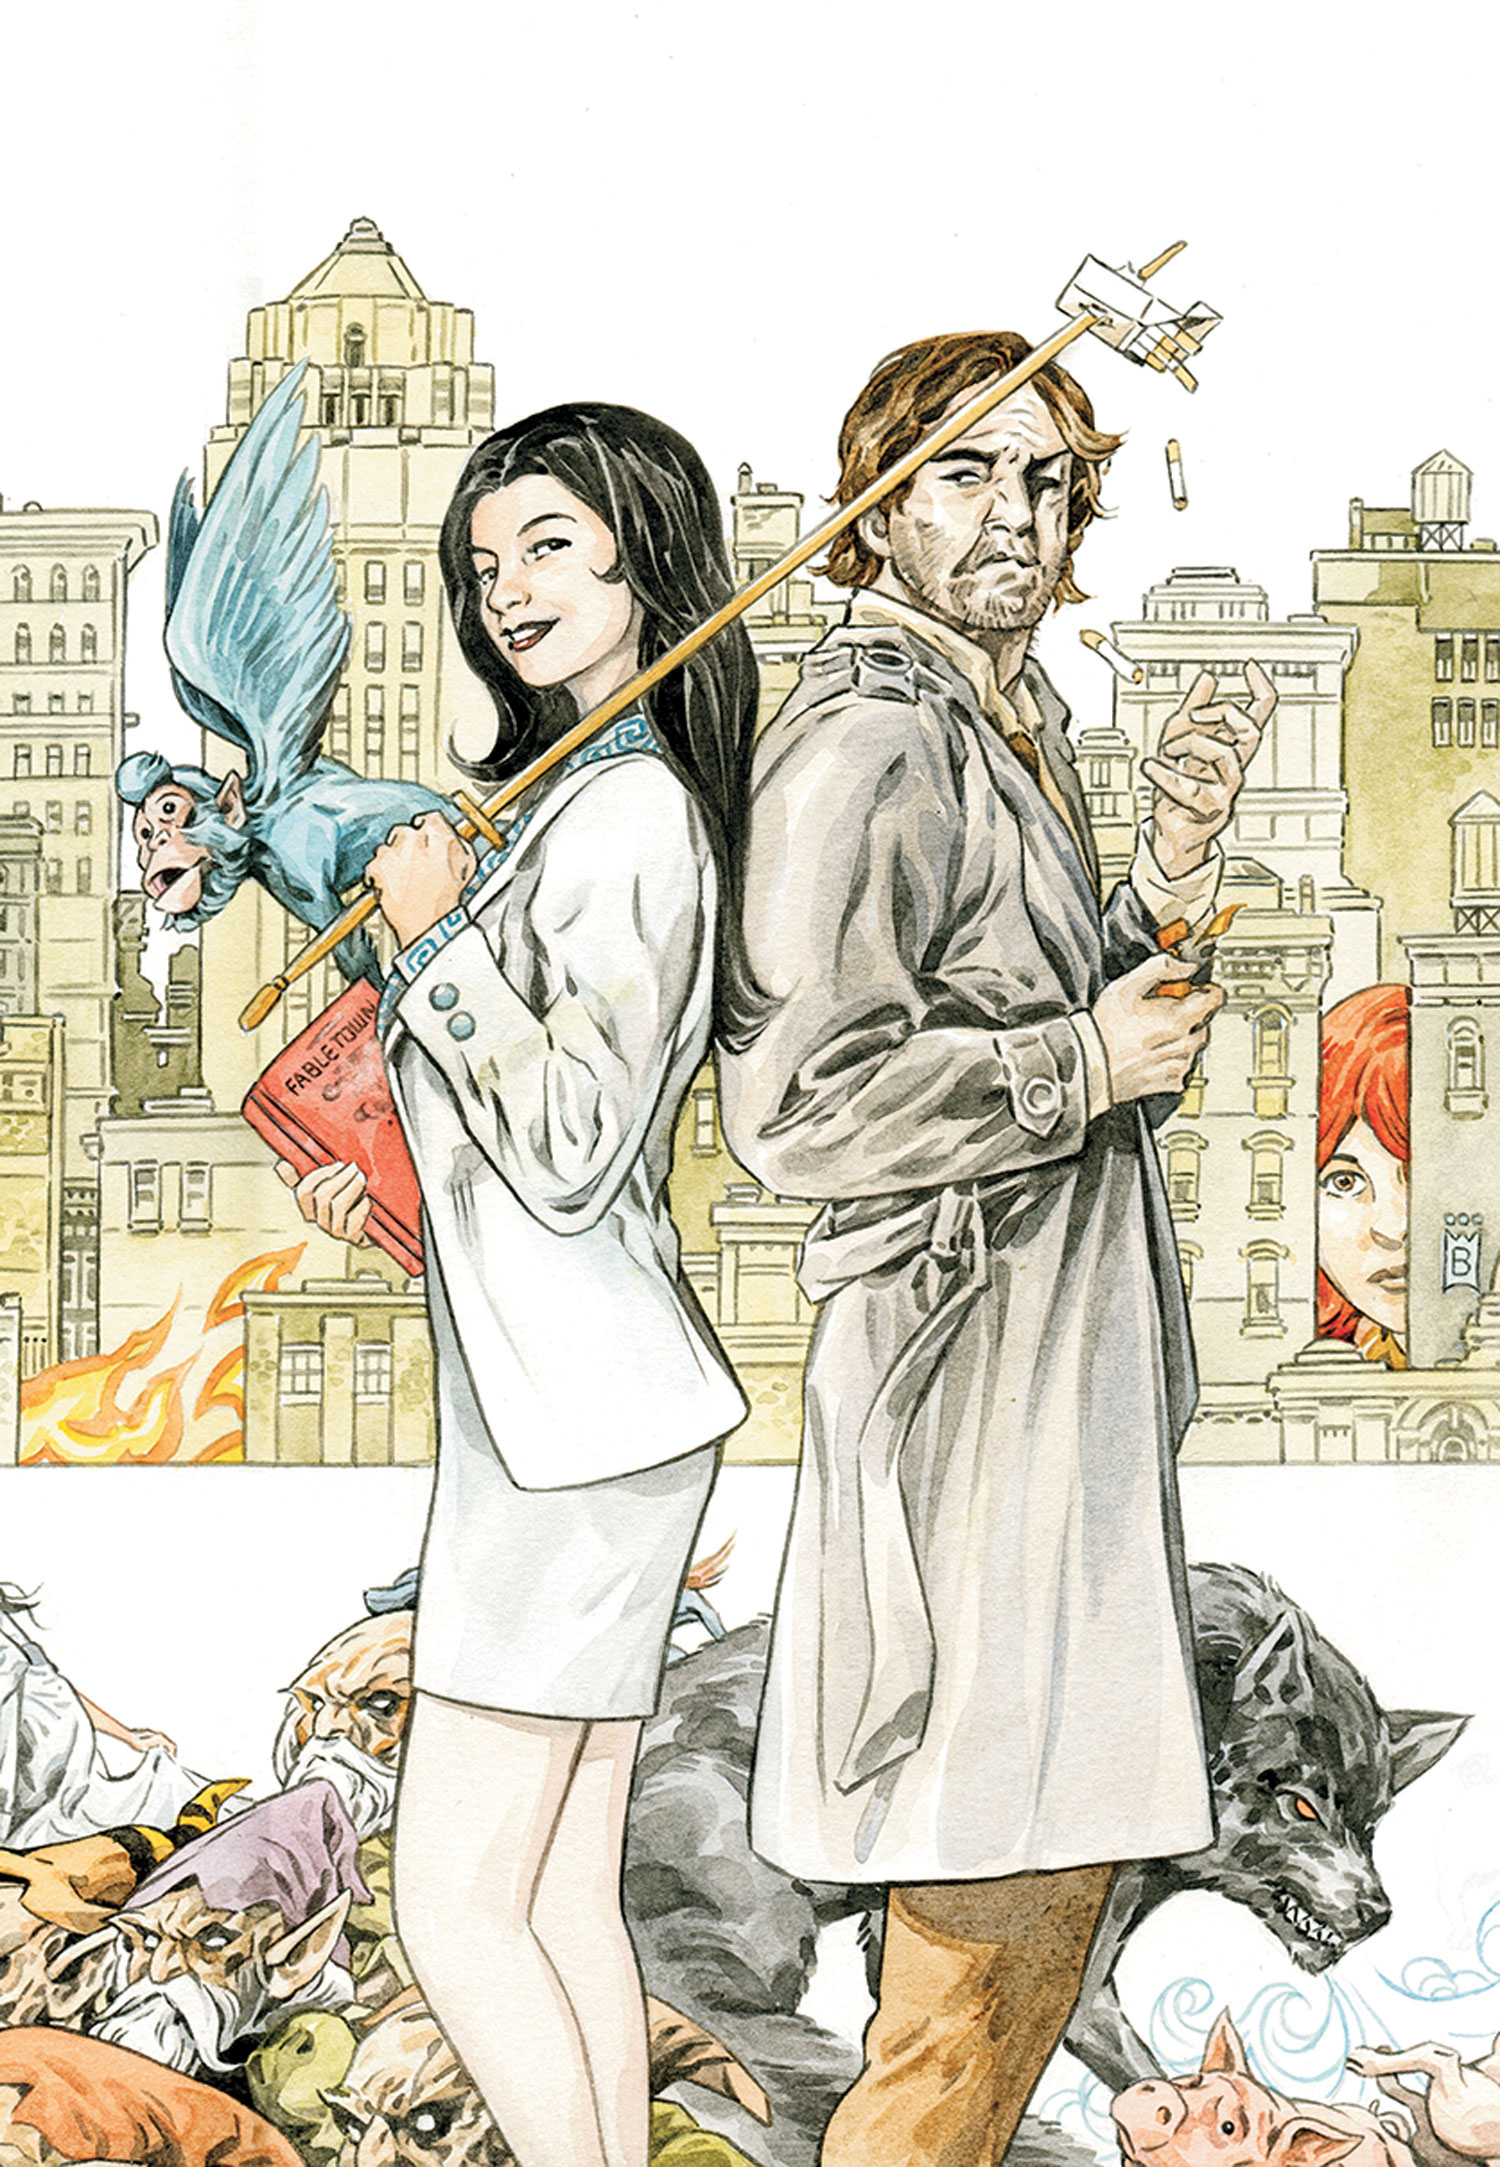 Fables Vol 1 125 Textless.jpg